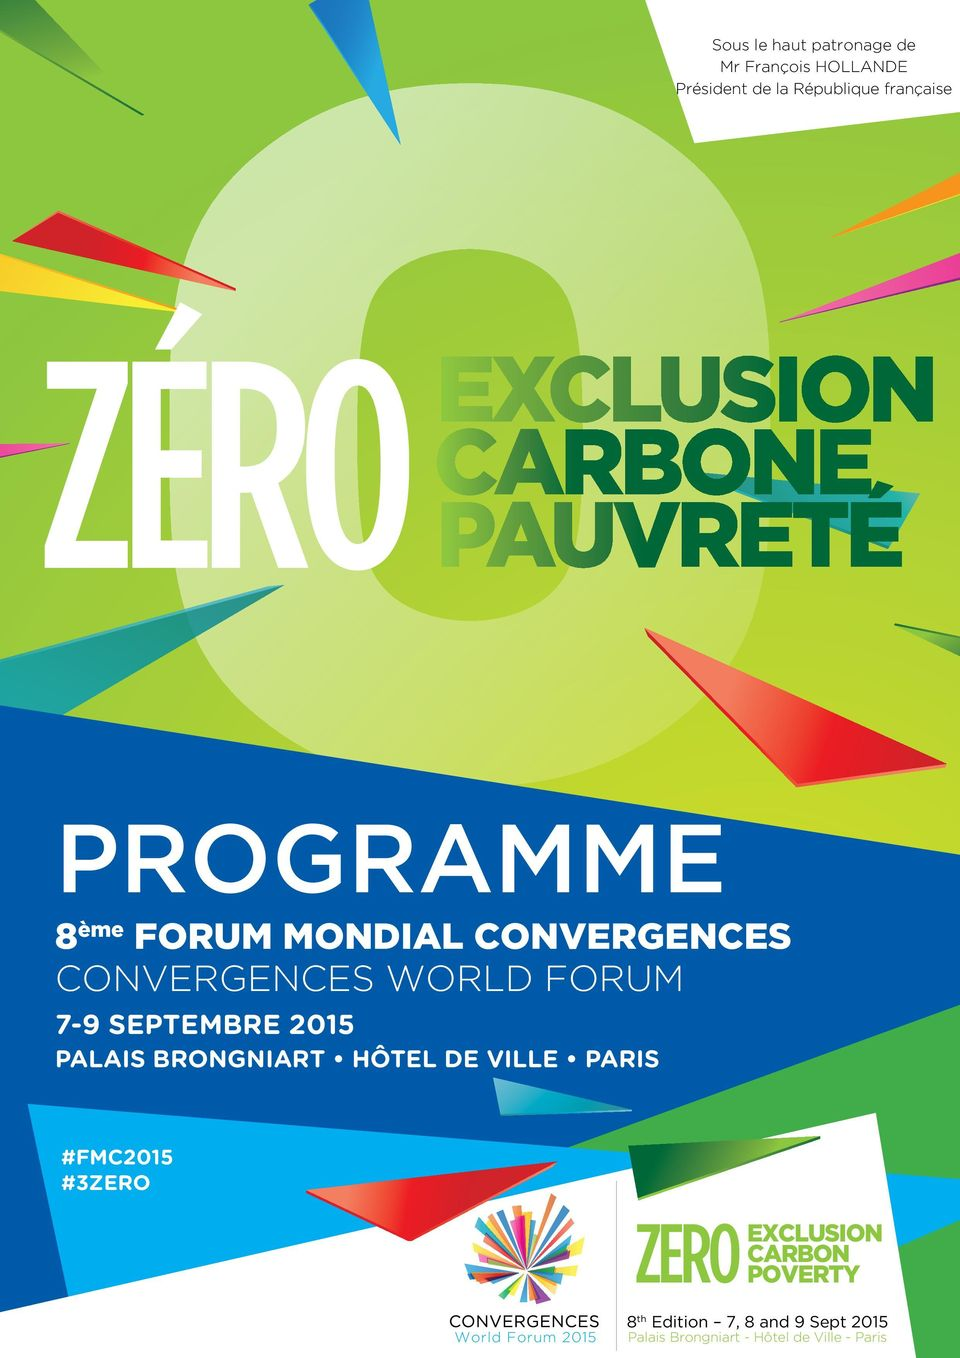 CONVERGENCES WORLD FORUM 7-9 Septembre 2015 Palais 8 ème Brongniart édition Hôtel 7, de 8 ville et 9 Paris sept.